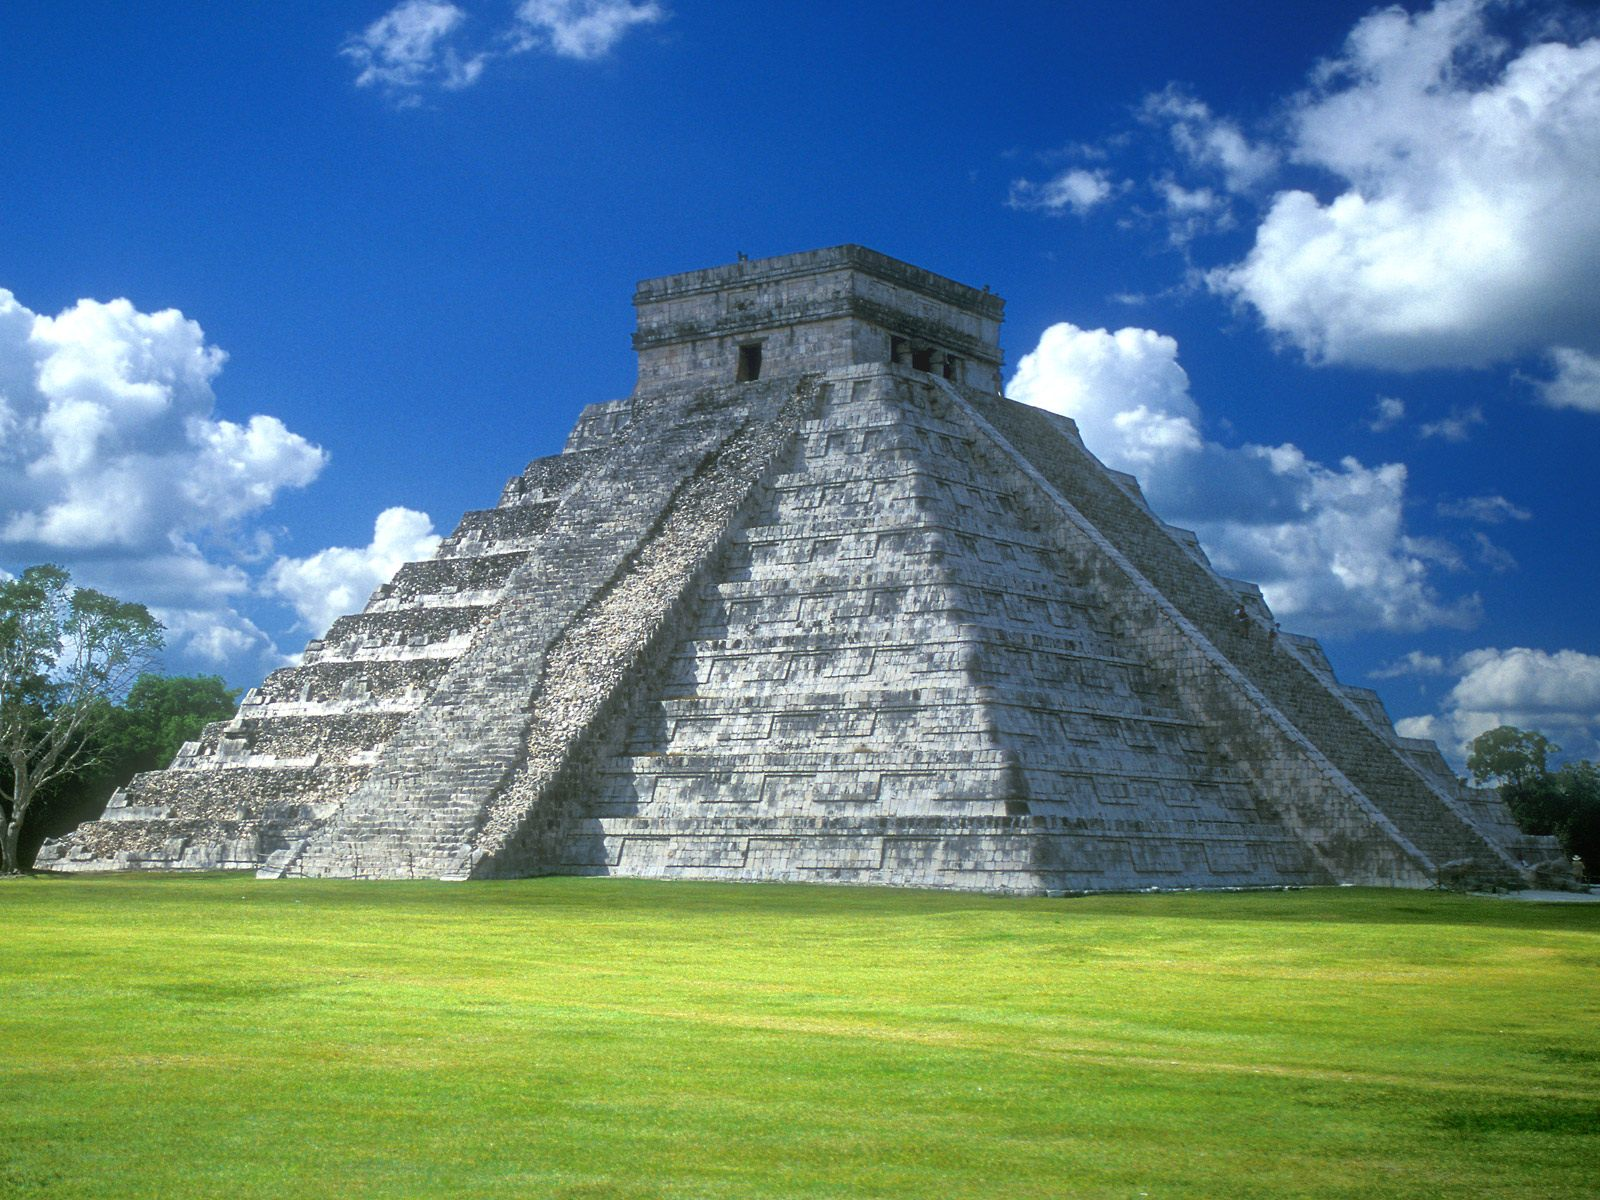 Pyramid of Mexico 362.4 Kb